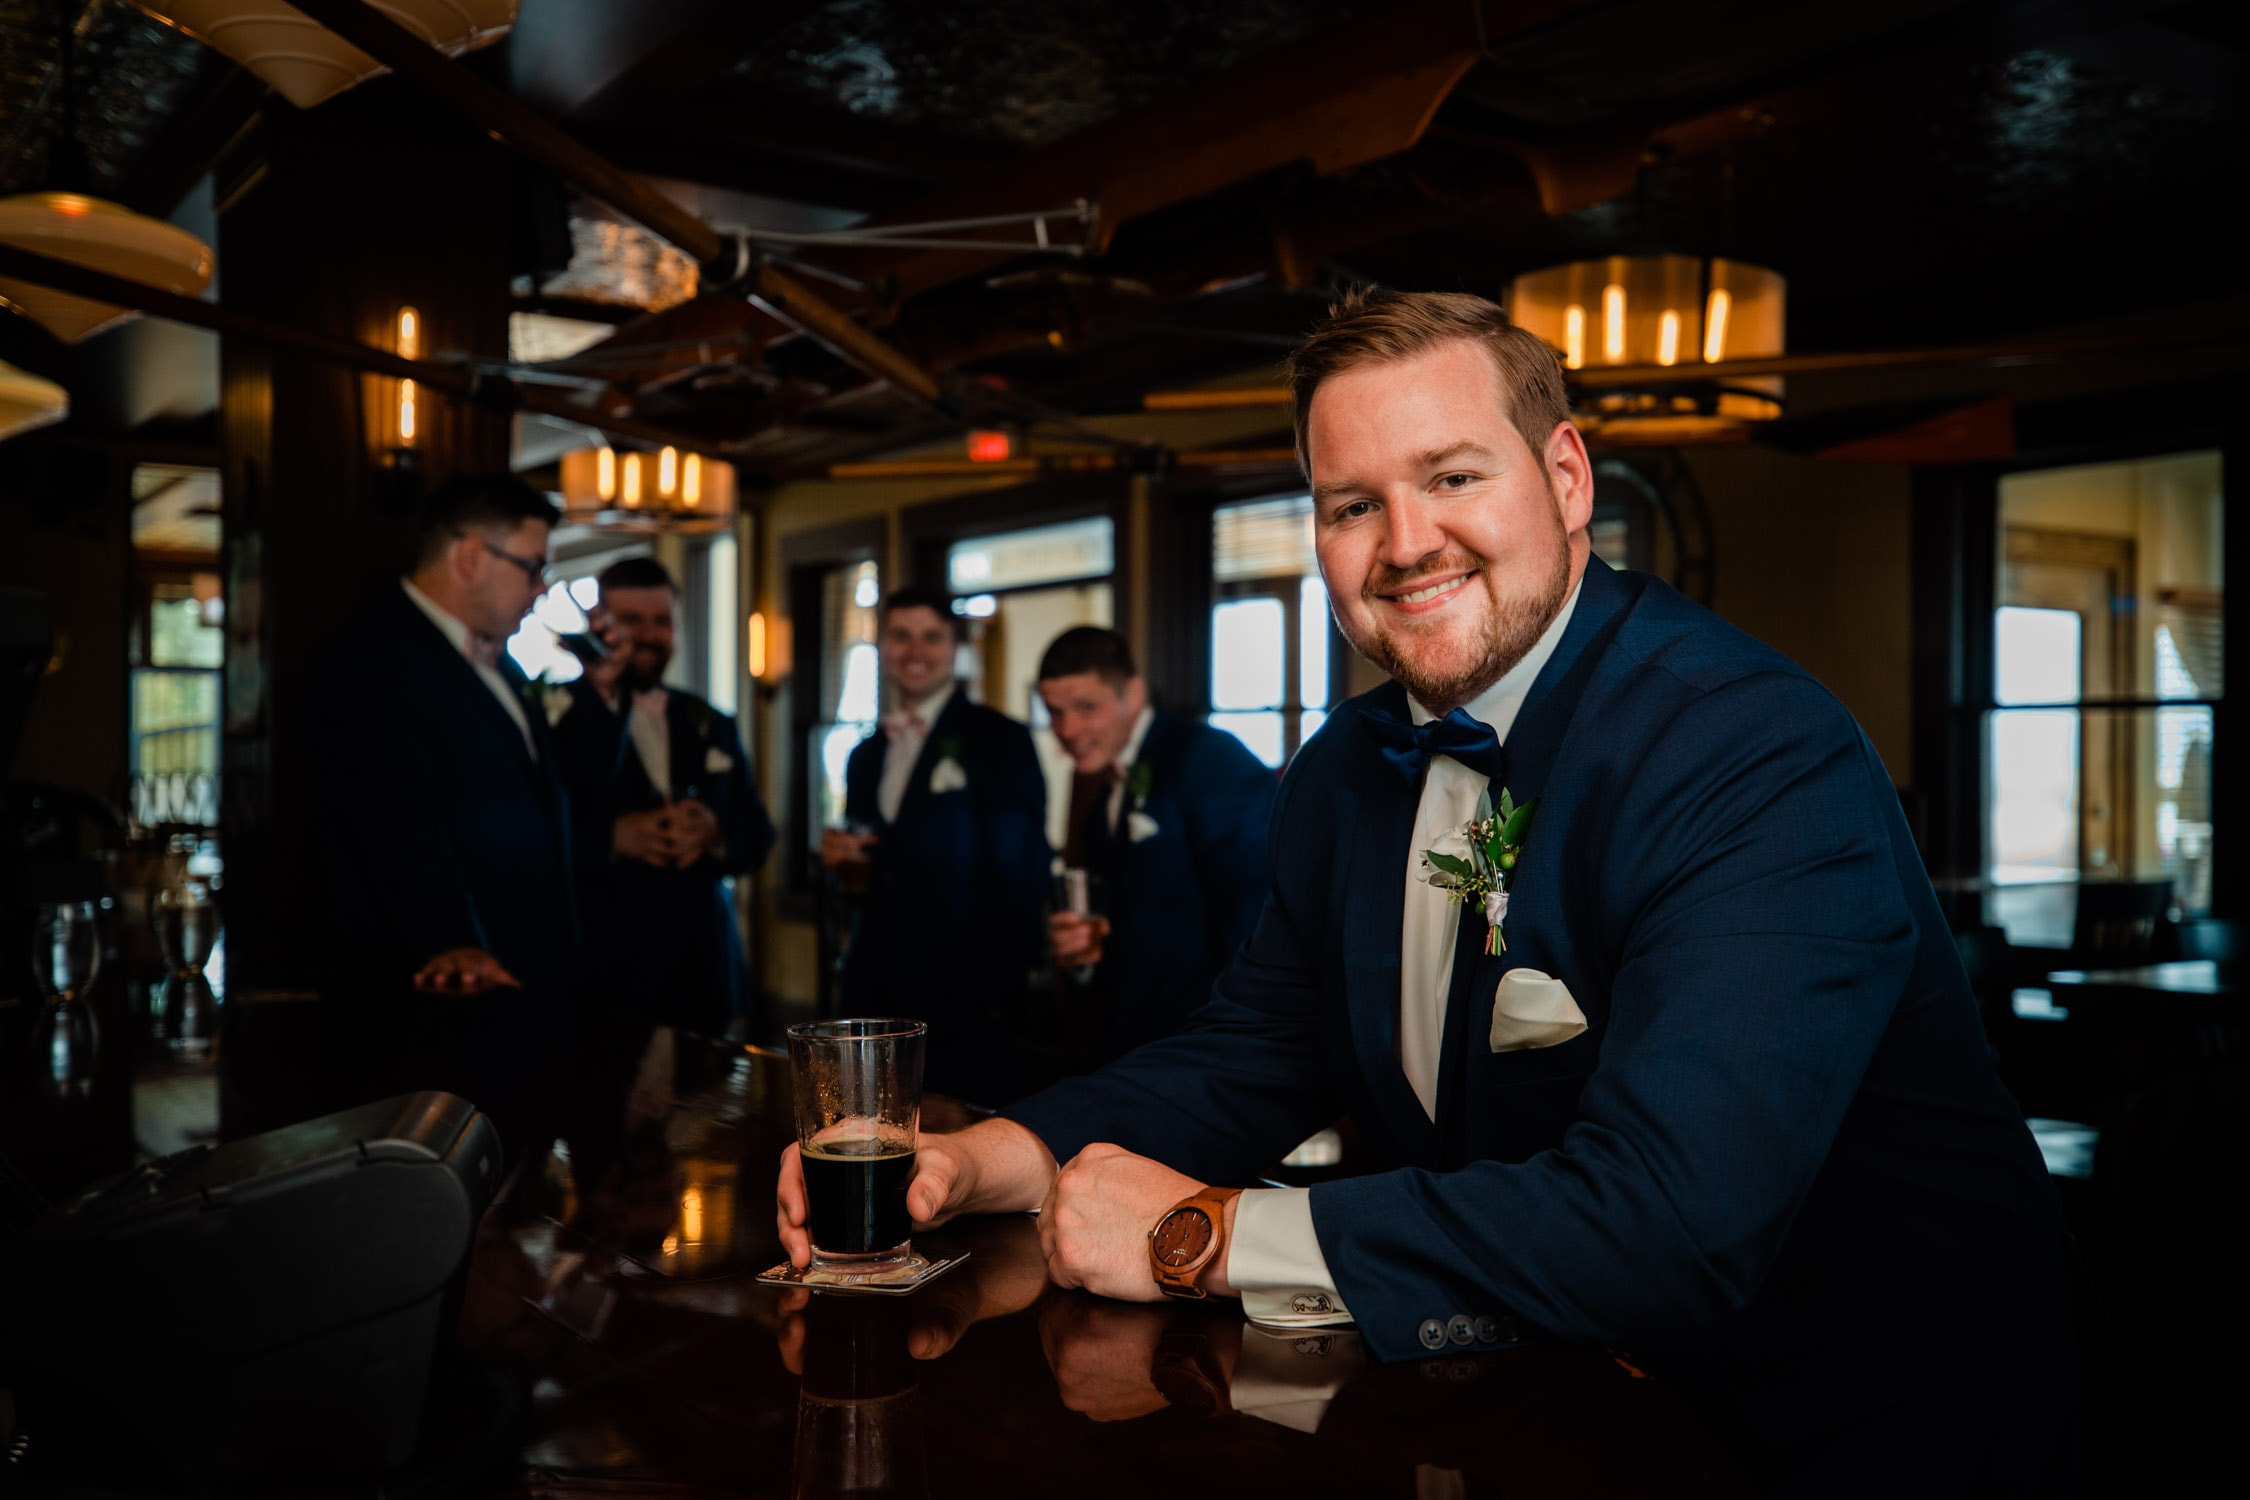 A grooms smiles at the camera while holding a drink in a bar in Kelowna, BC